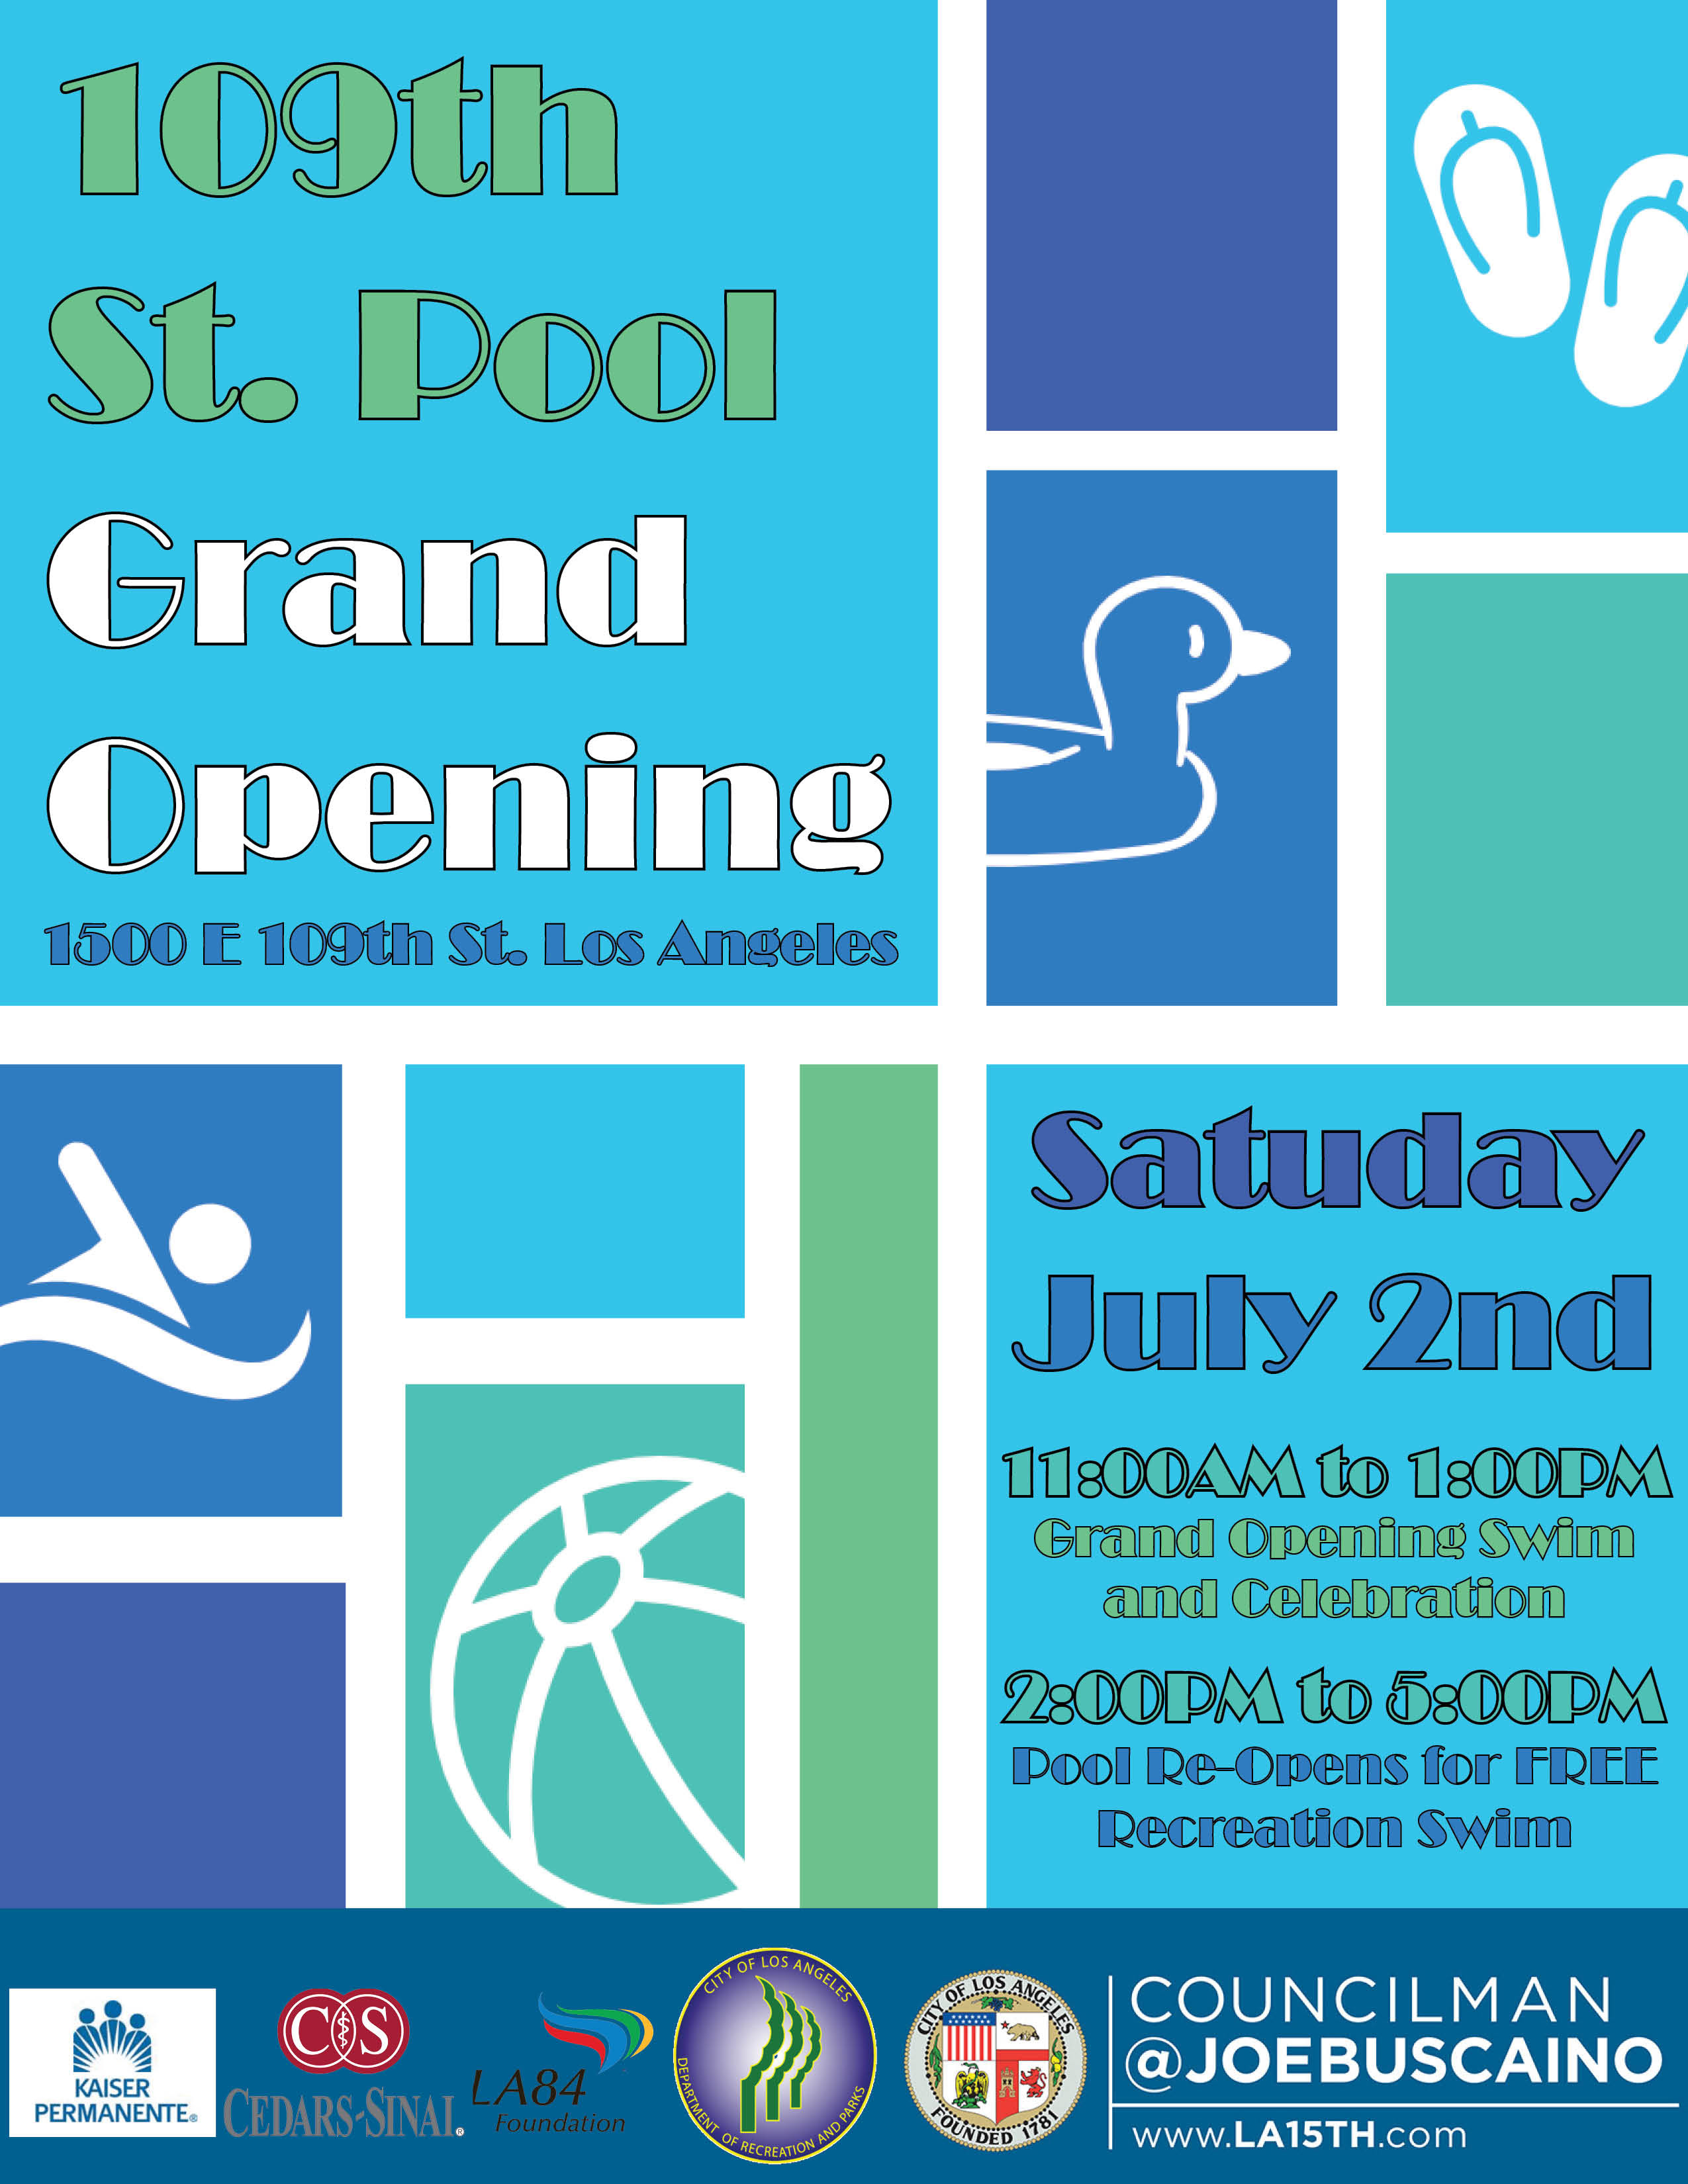 Pool_Opening_Flyer_Draft_1f.jpg